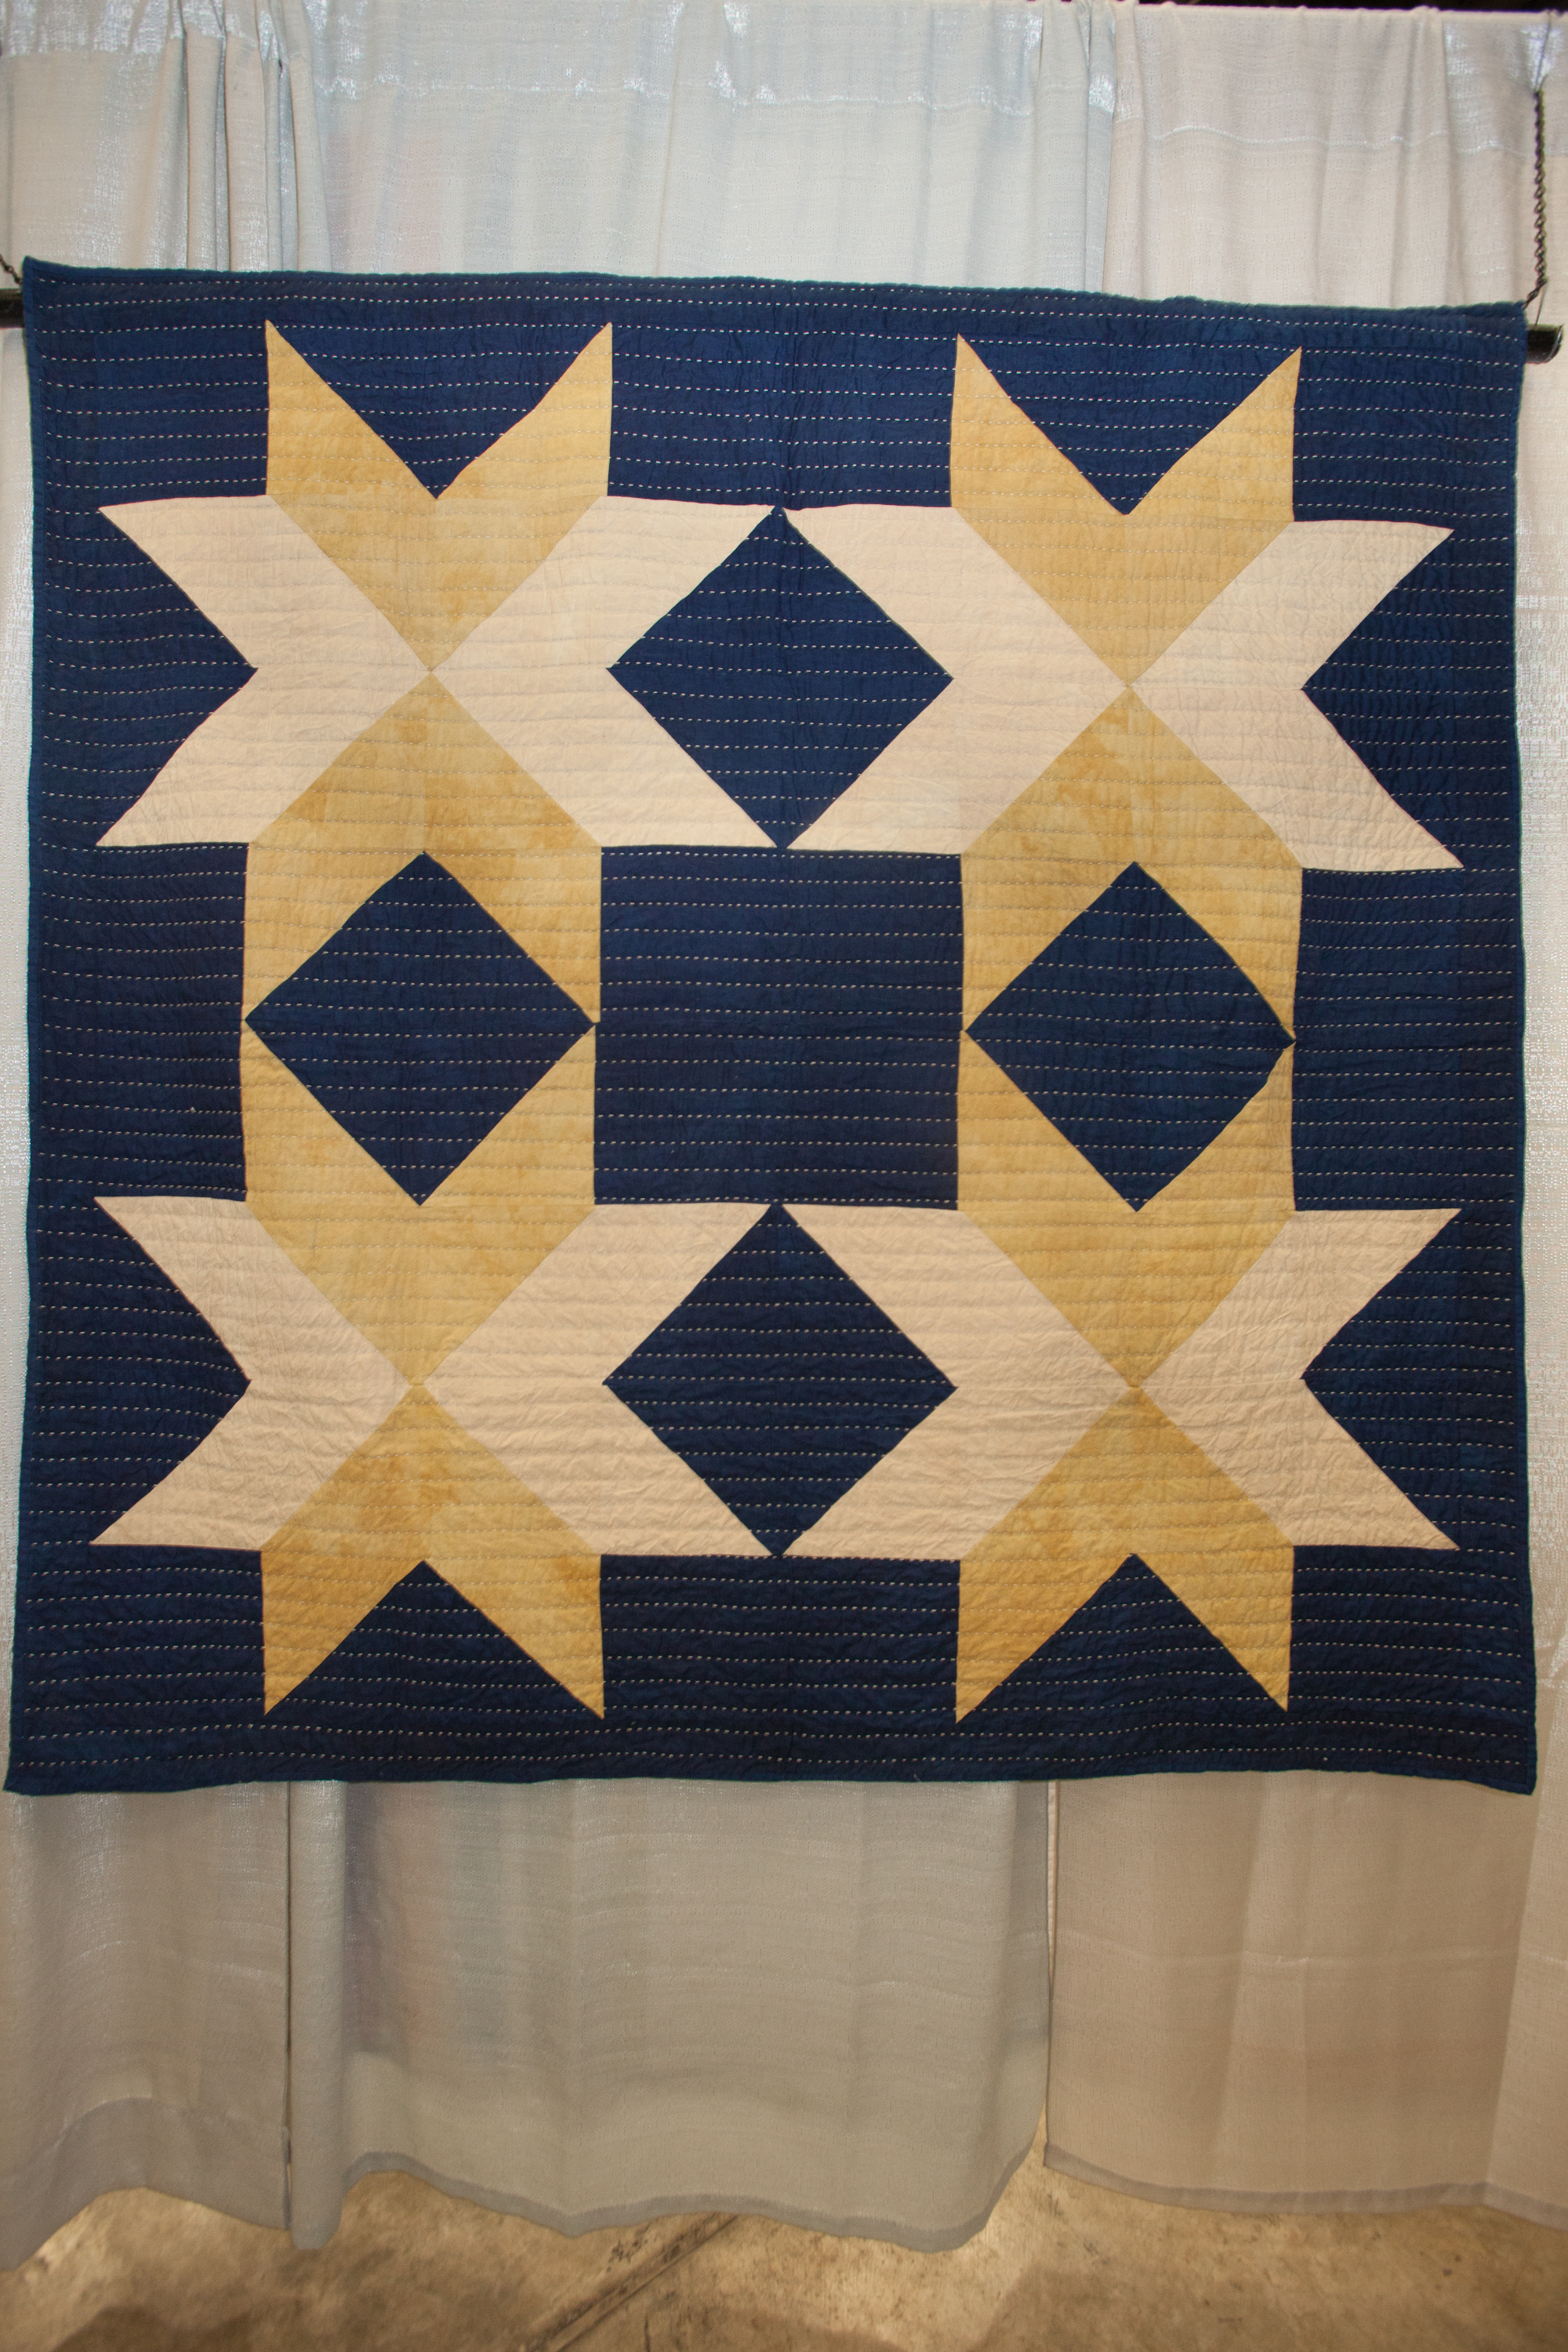 3rd Place: Dark Star  Pieced and quilted by Maura G. Ambrose